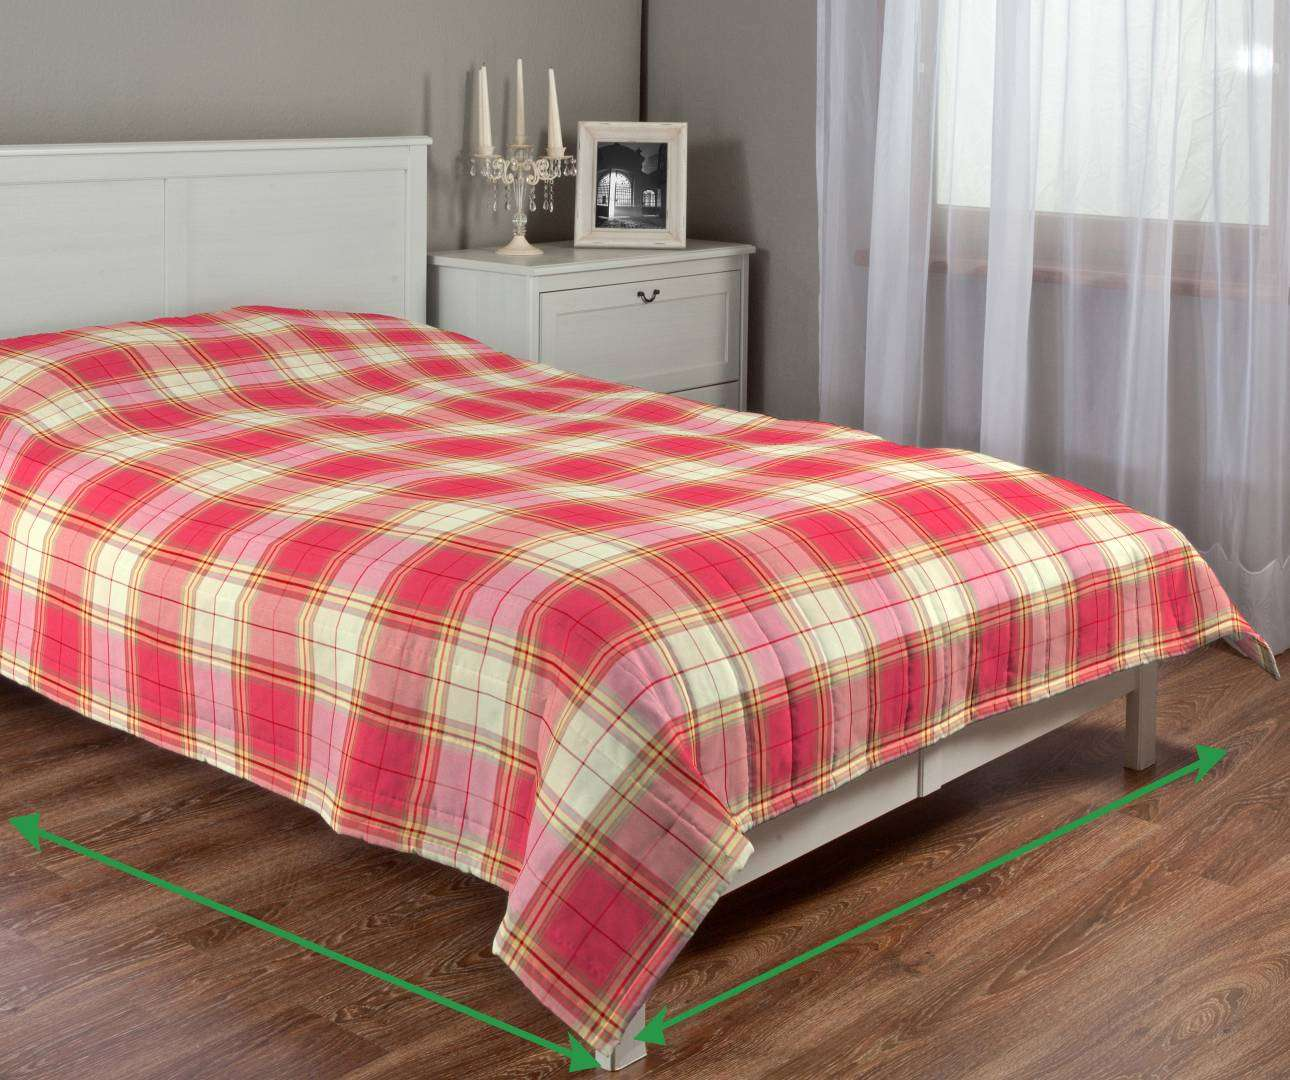 Quilted throw (vertical quilt pattern) in collection Bristol, fabric: 125-25